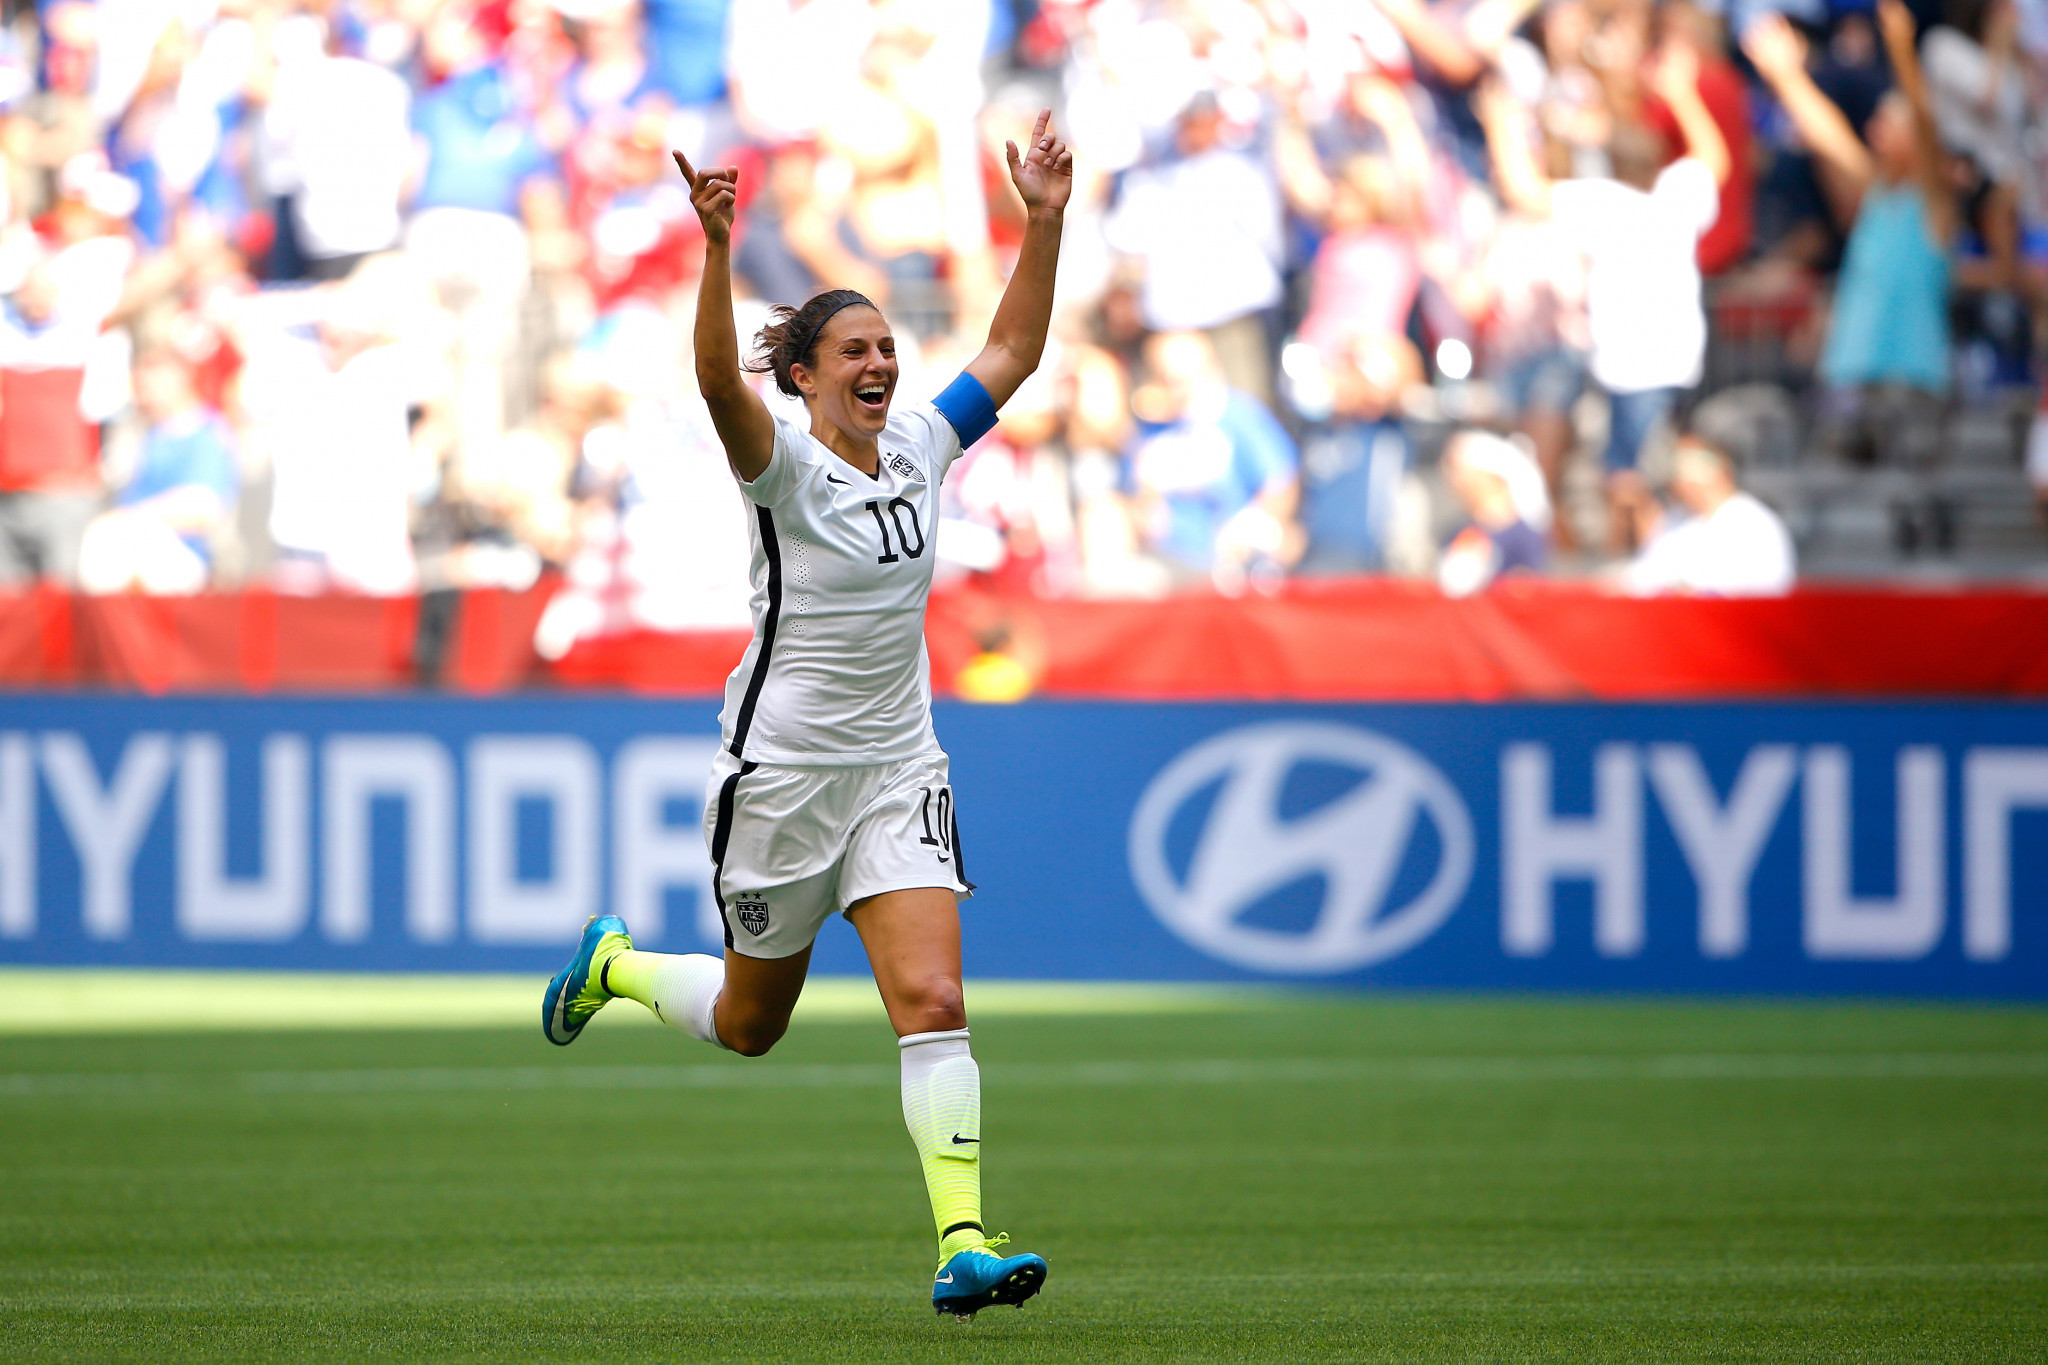 The 2015 World Cup final was arguably the finest hour of Carli Lloyd's career, as she scored a hat-trick inside 16 minutes ©Getty Images